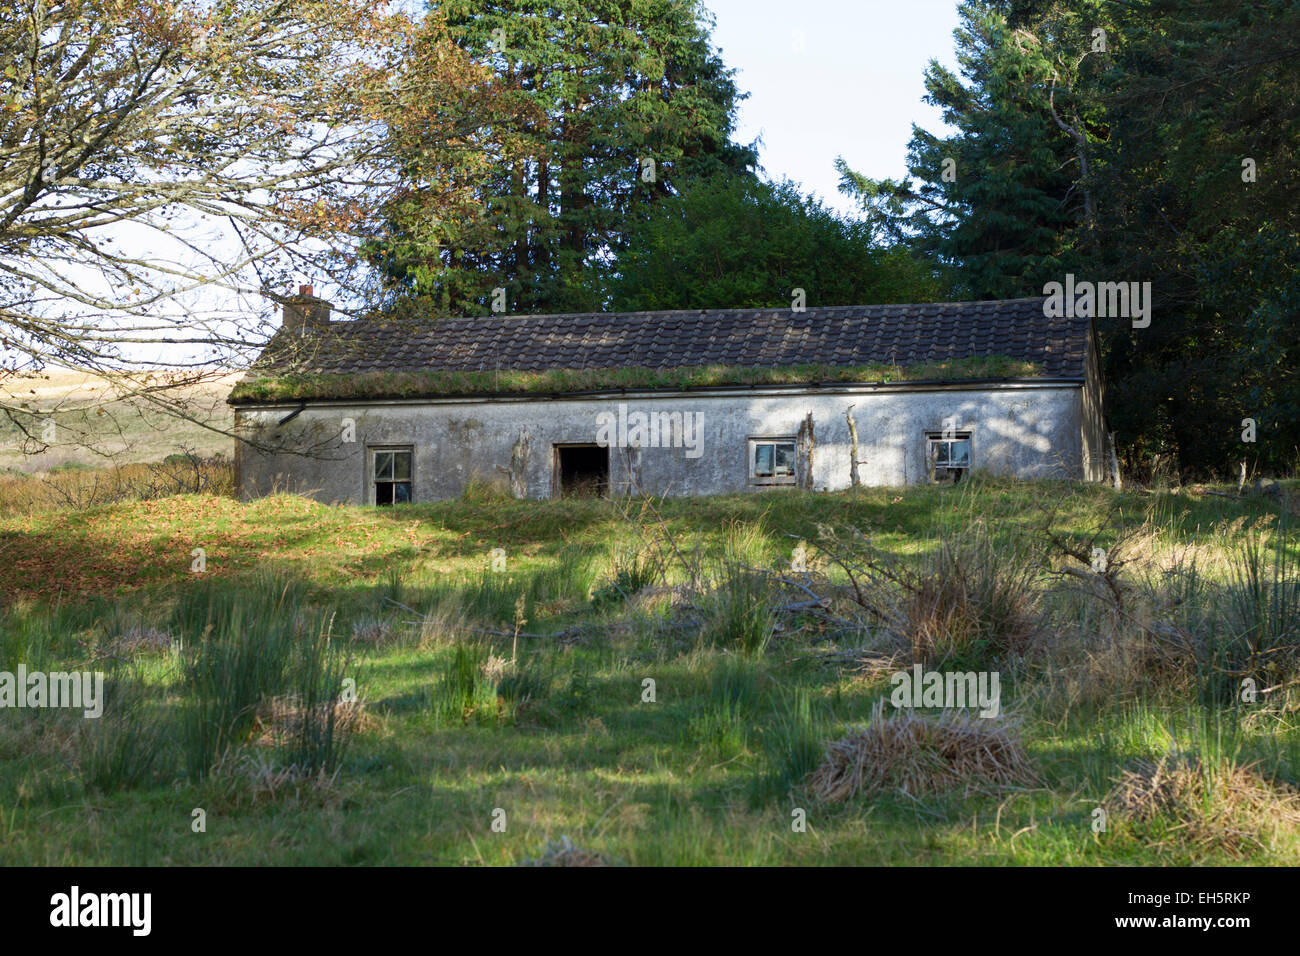 An old run down house in Co. Donegal, Ireland - Stock Image